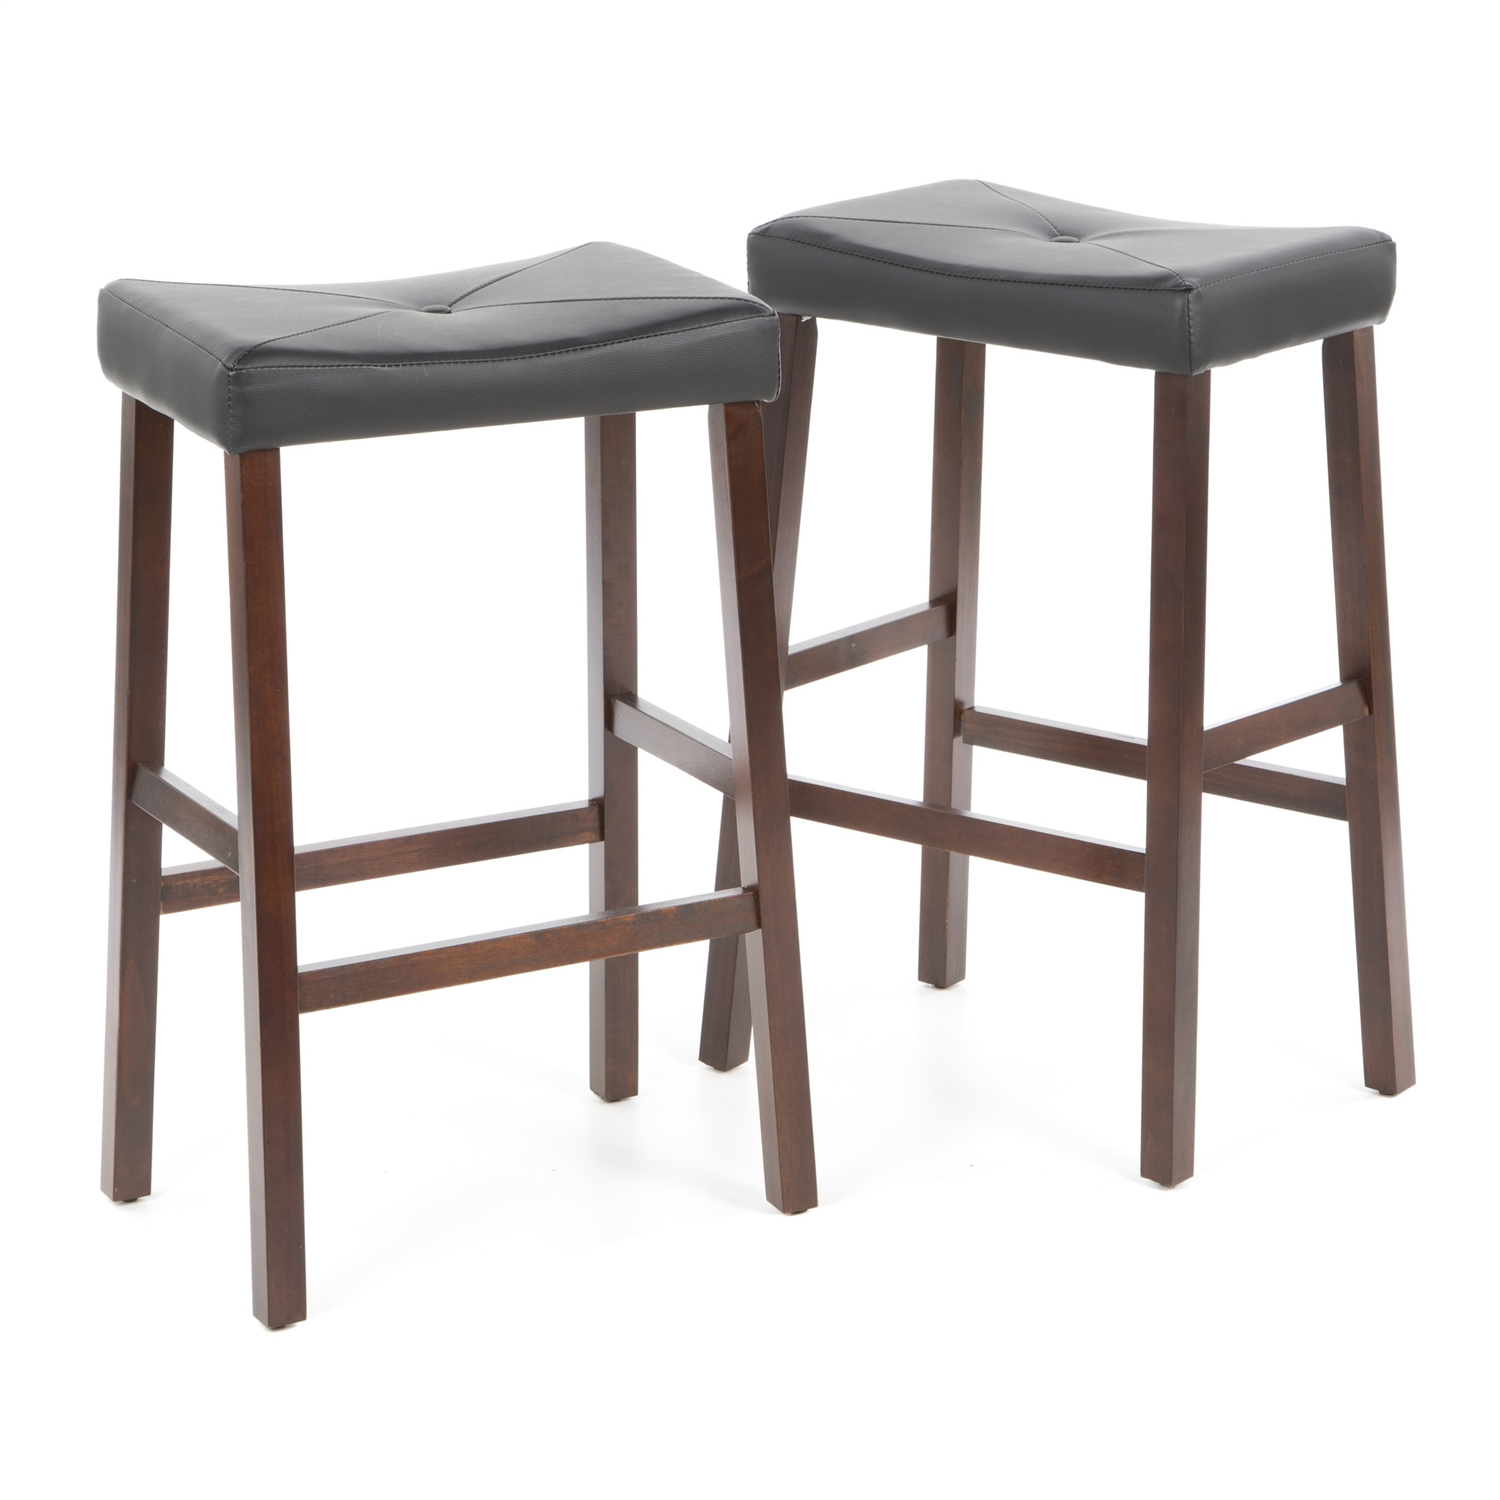 """Comfort and style combined. This Set of 2 - Upholstered Faux Leather Saddle Seat Barstool in Mahogany features solid hardwood construction. The cushioned saddle seat is upholstered in faux leather vinyl, that is stain and spill resistant. Four solid hardwood leg stretchers for durability; Style: Traditional; Seat Height Type: Bar (28""""-33""""); Seat Style: Saddle; Frame Finish: 1: Black; Frame Finish: 2: Cherry; Frame Finish: 3: Mahogany; Seat Color: Black; Leg/Base Type: 4 legs; Footrest Included: Yes."""